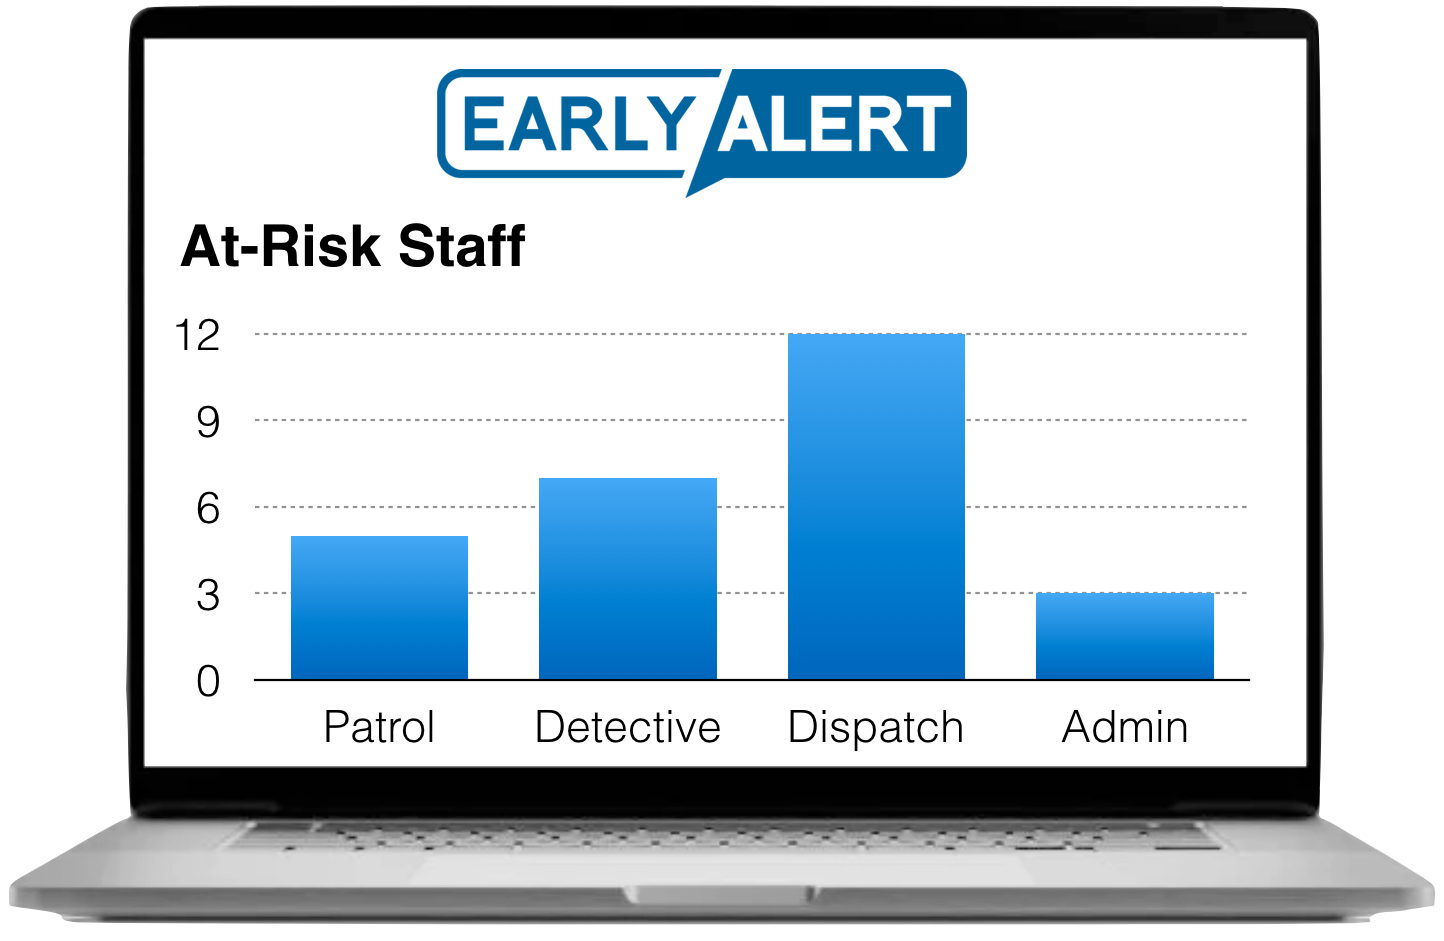 Dashboard Showing Number of Distressed Officers by Administrative Unit